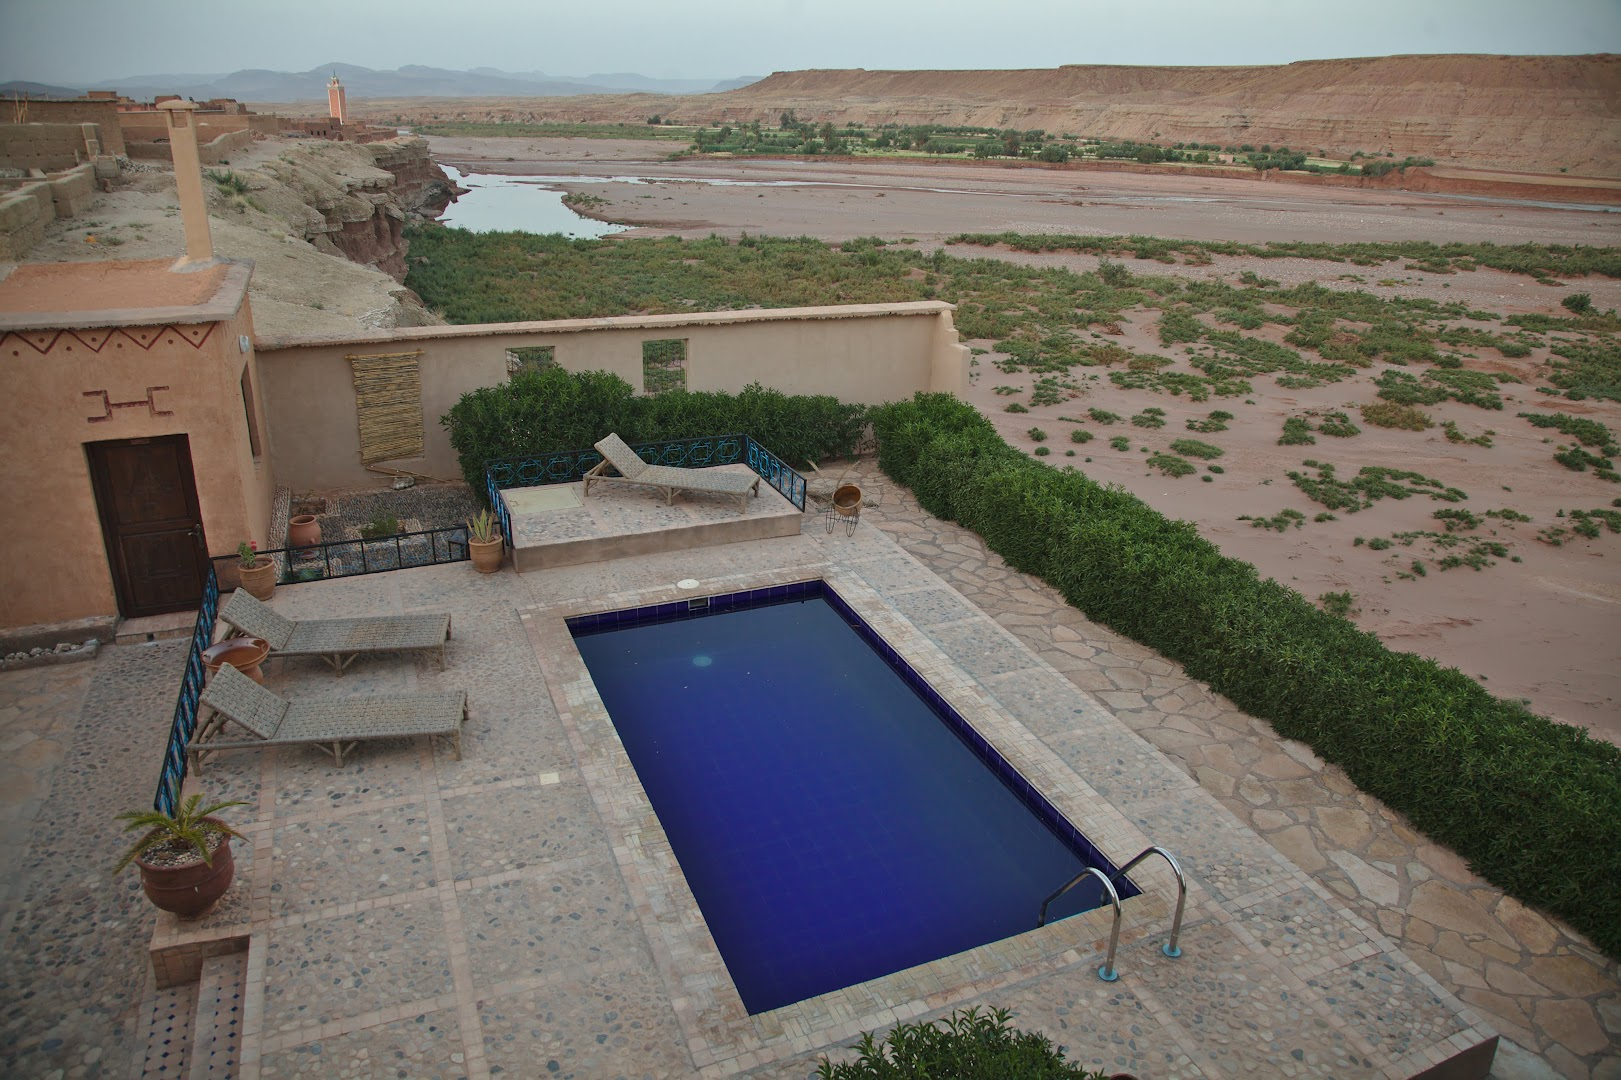 Pool and wine in desert - luxury stuff!